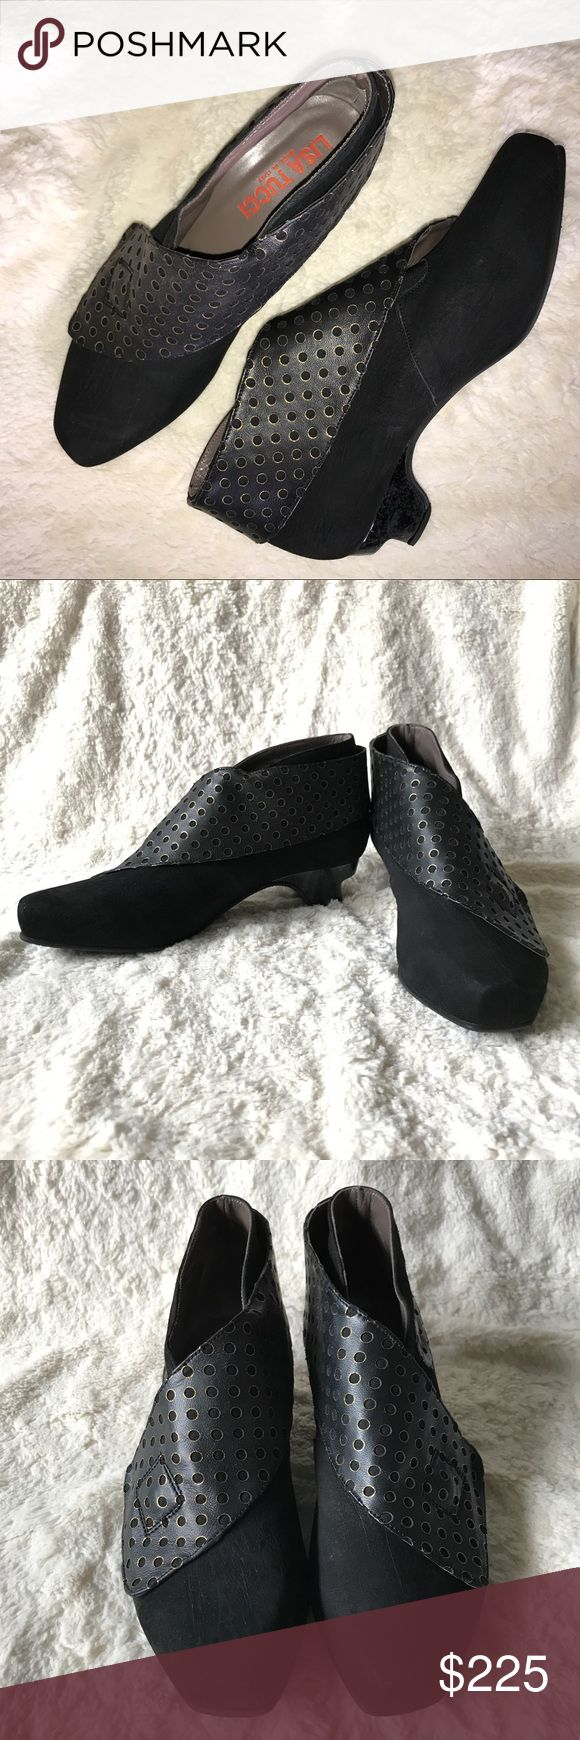 Lisa Tucci Ankle Boots 39 Italian Leather Designer New Without Box. Please feel free to ask questions. Lisa Tucci Shoes Ankle Boots & Booties